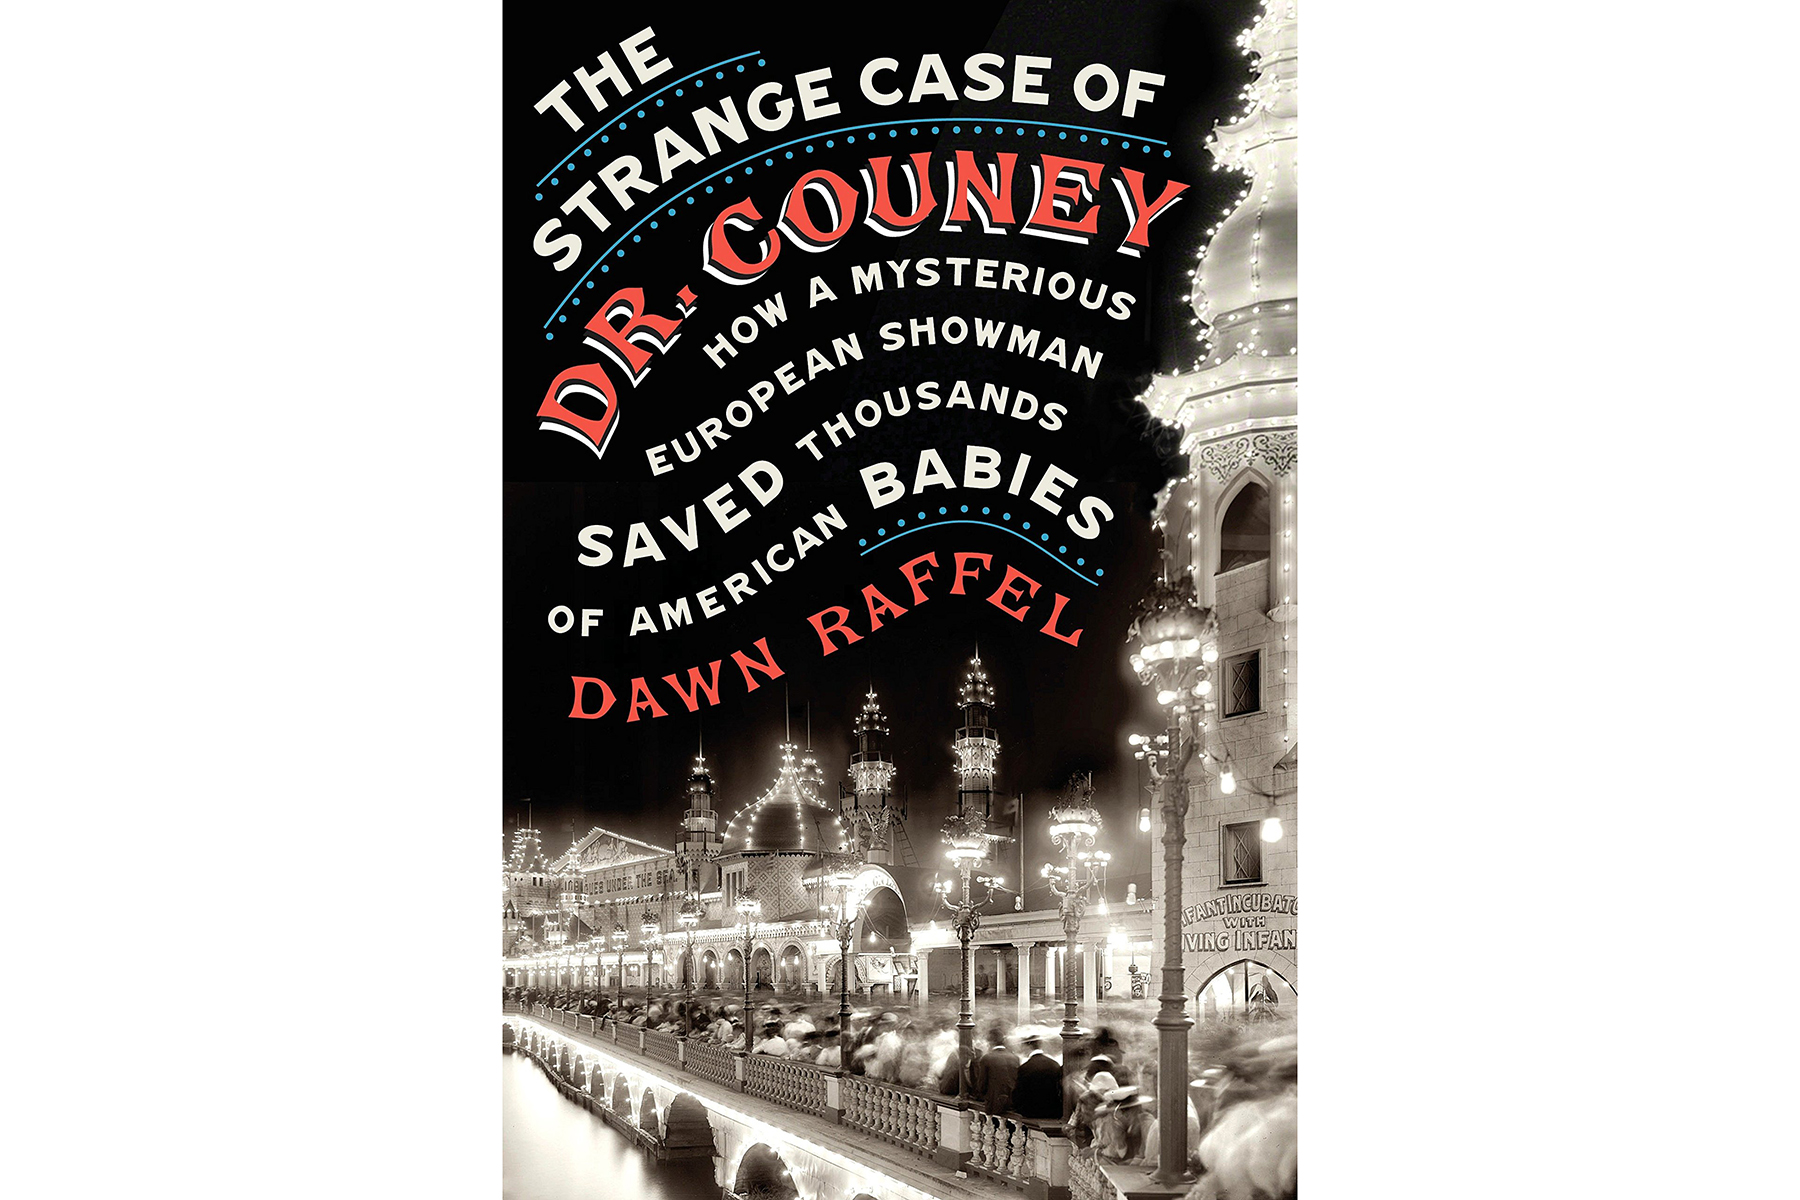 Cover of The Strange Case of Dr. Couney, by Dawn Raffel